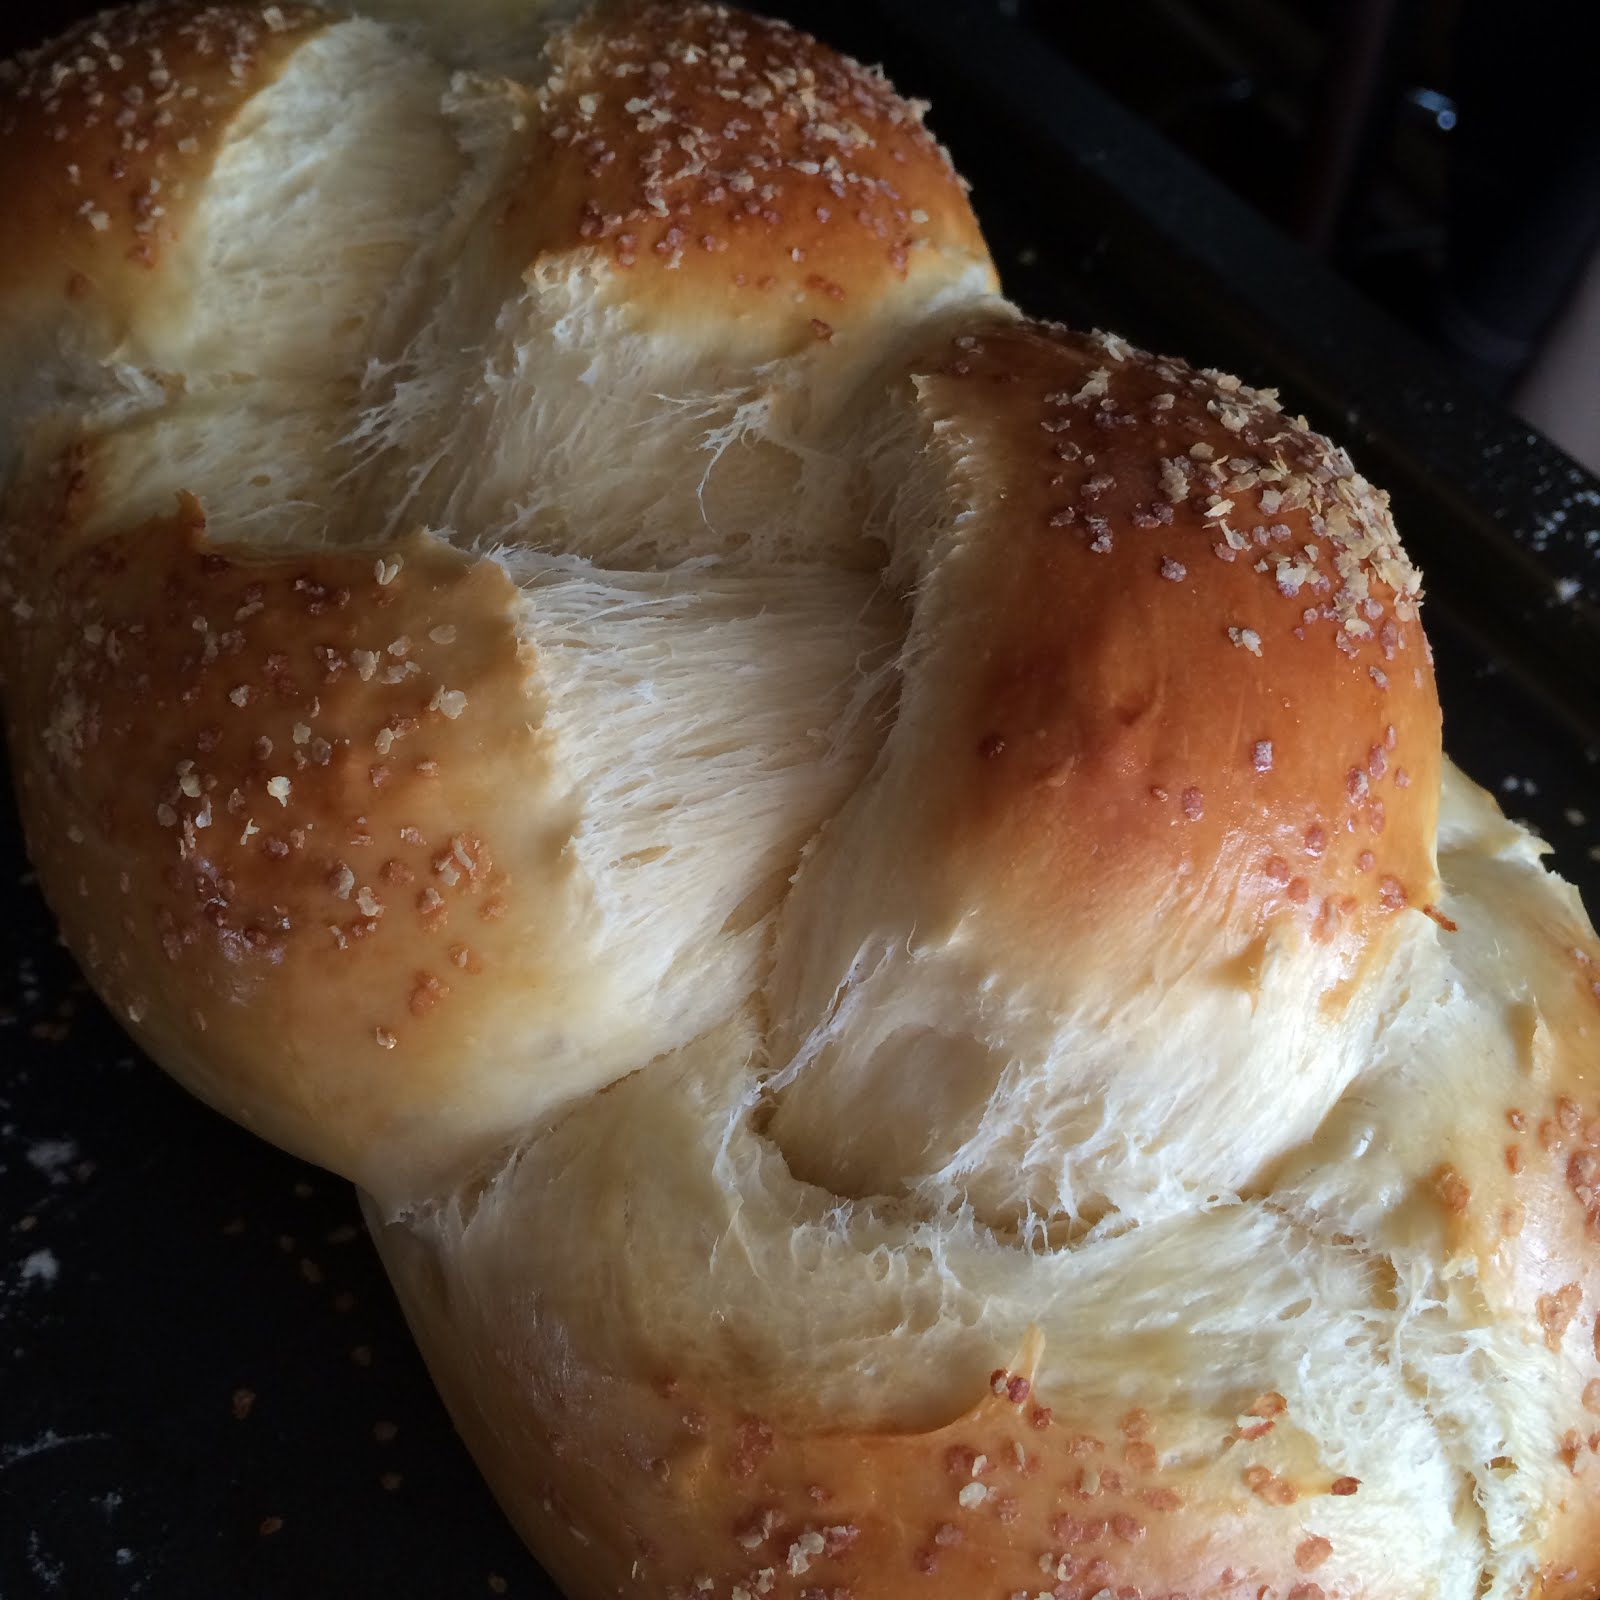 Hafrashat Challah (the separating of the Sabbath bread)